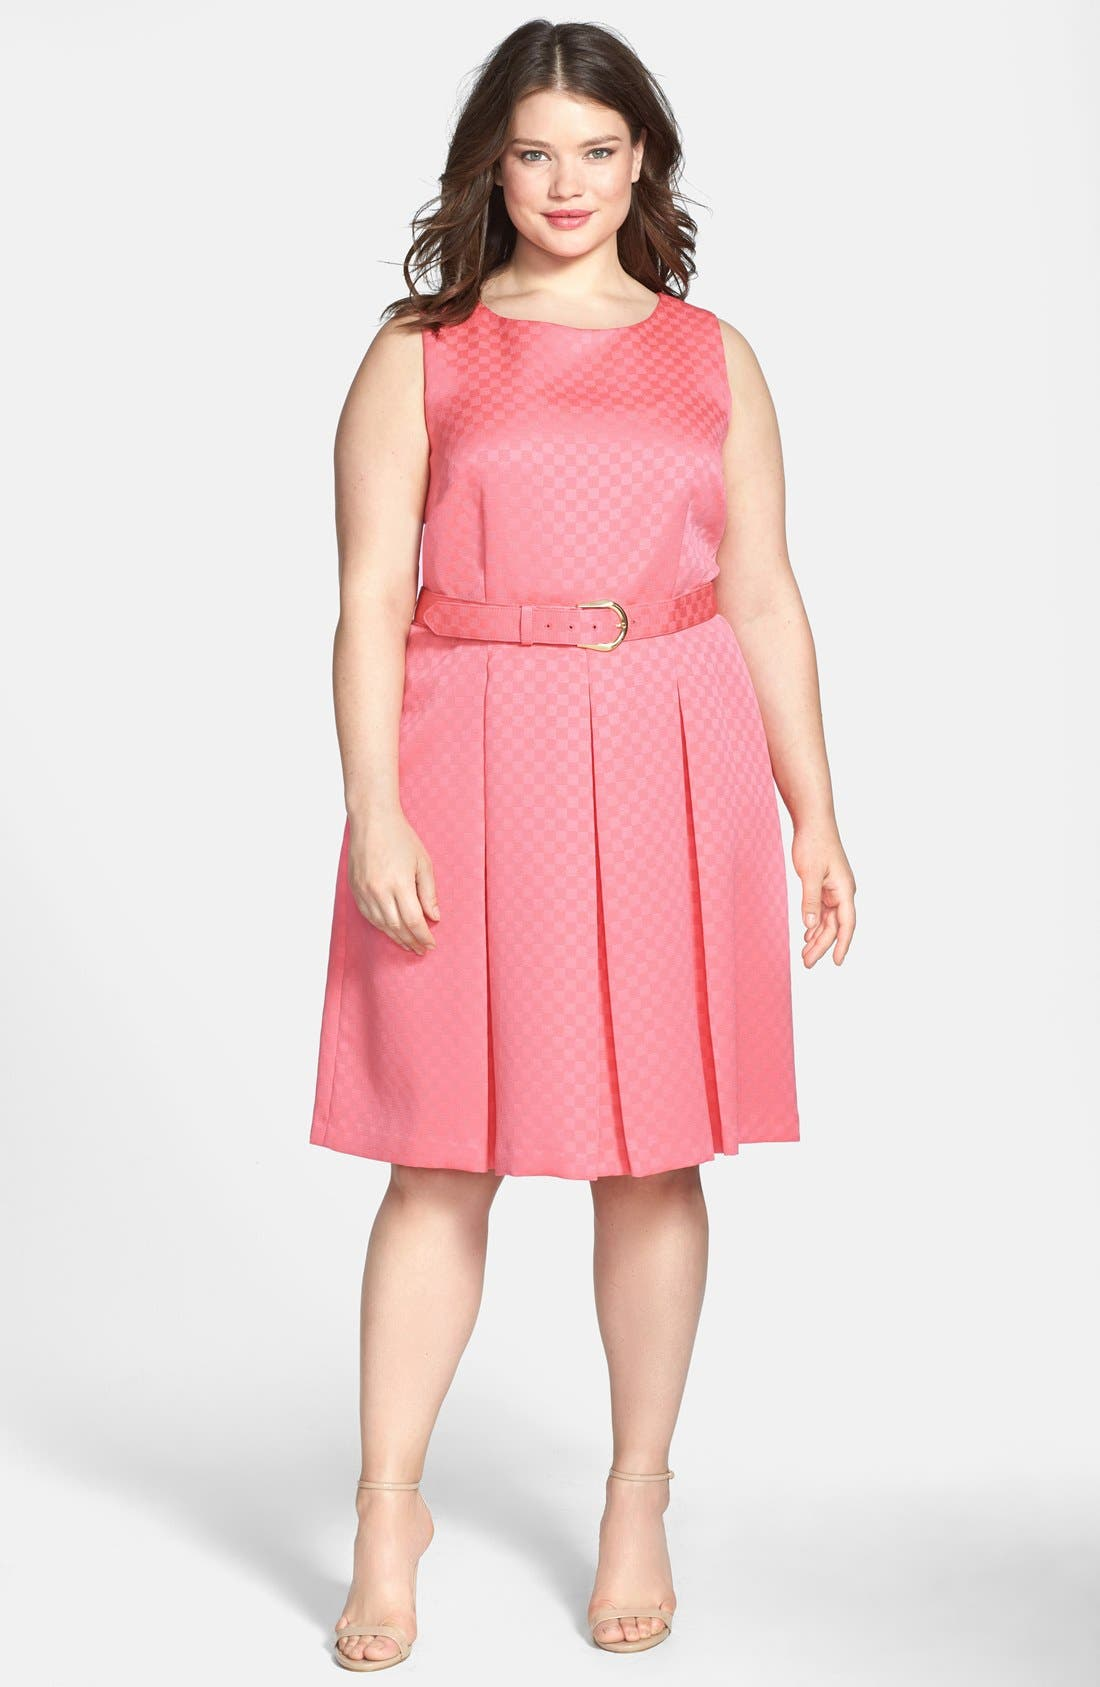 Alternate Image 1 Selected - Tahari by ASL Belted Jacquard Pleat Fit & Flare Dress (Plus Size)